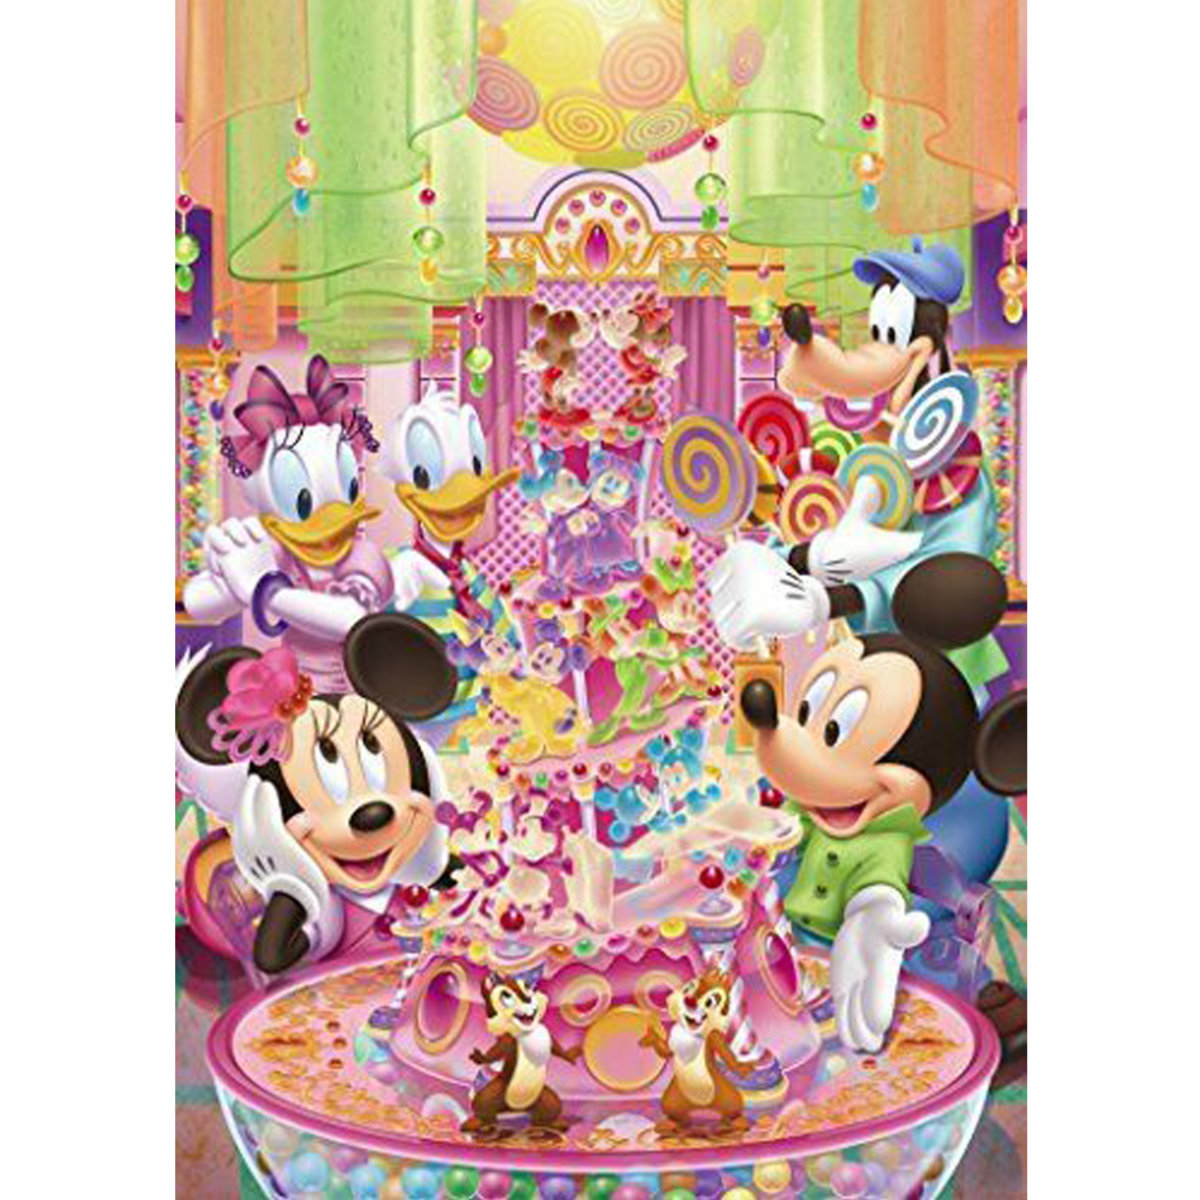 266 pieces puzzle Mickey Mouse Minnie Mouse Candy Party (4905823857465)